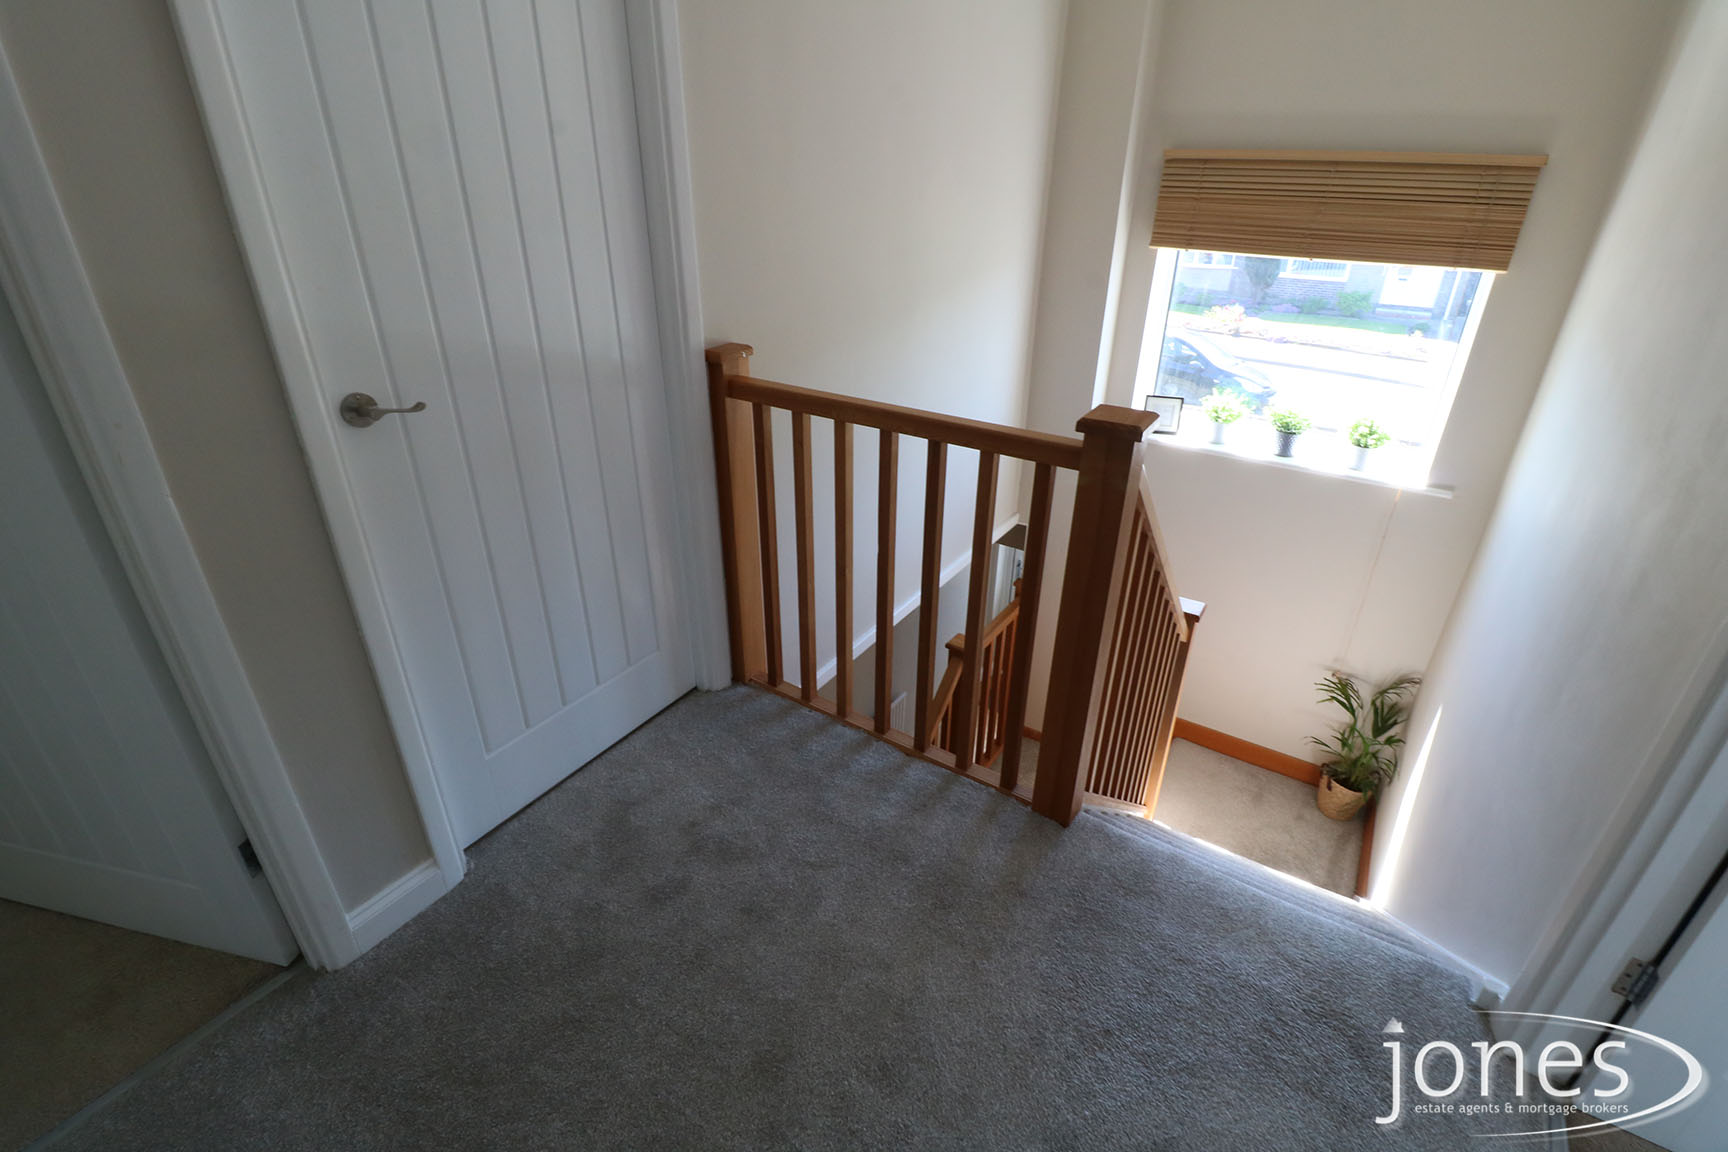 Home for Sale Let - Photo 08 Kielder Drive,Darlington,DL1 2BD